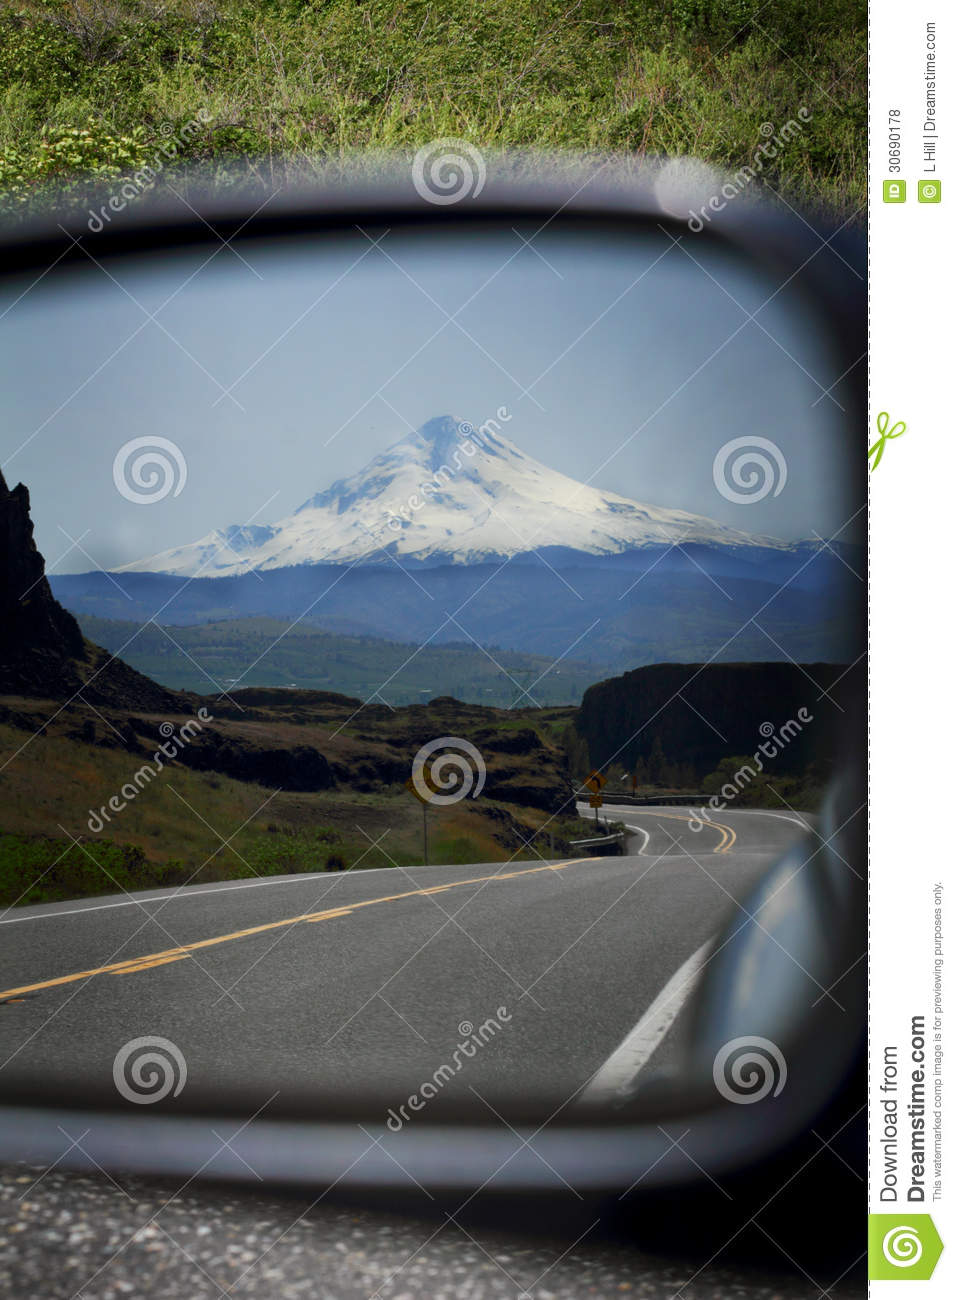 Time Road Id Roblox: Road From Mt Hood In Rear View Mirror Stock Photo